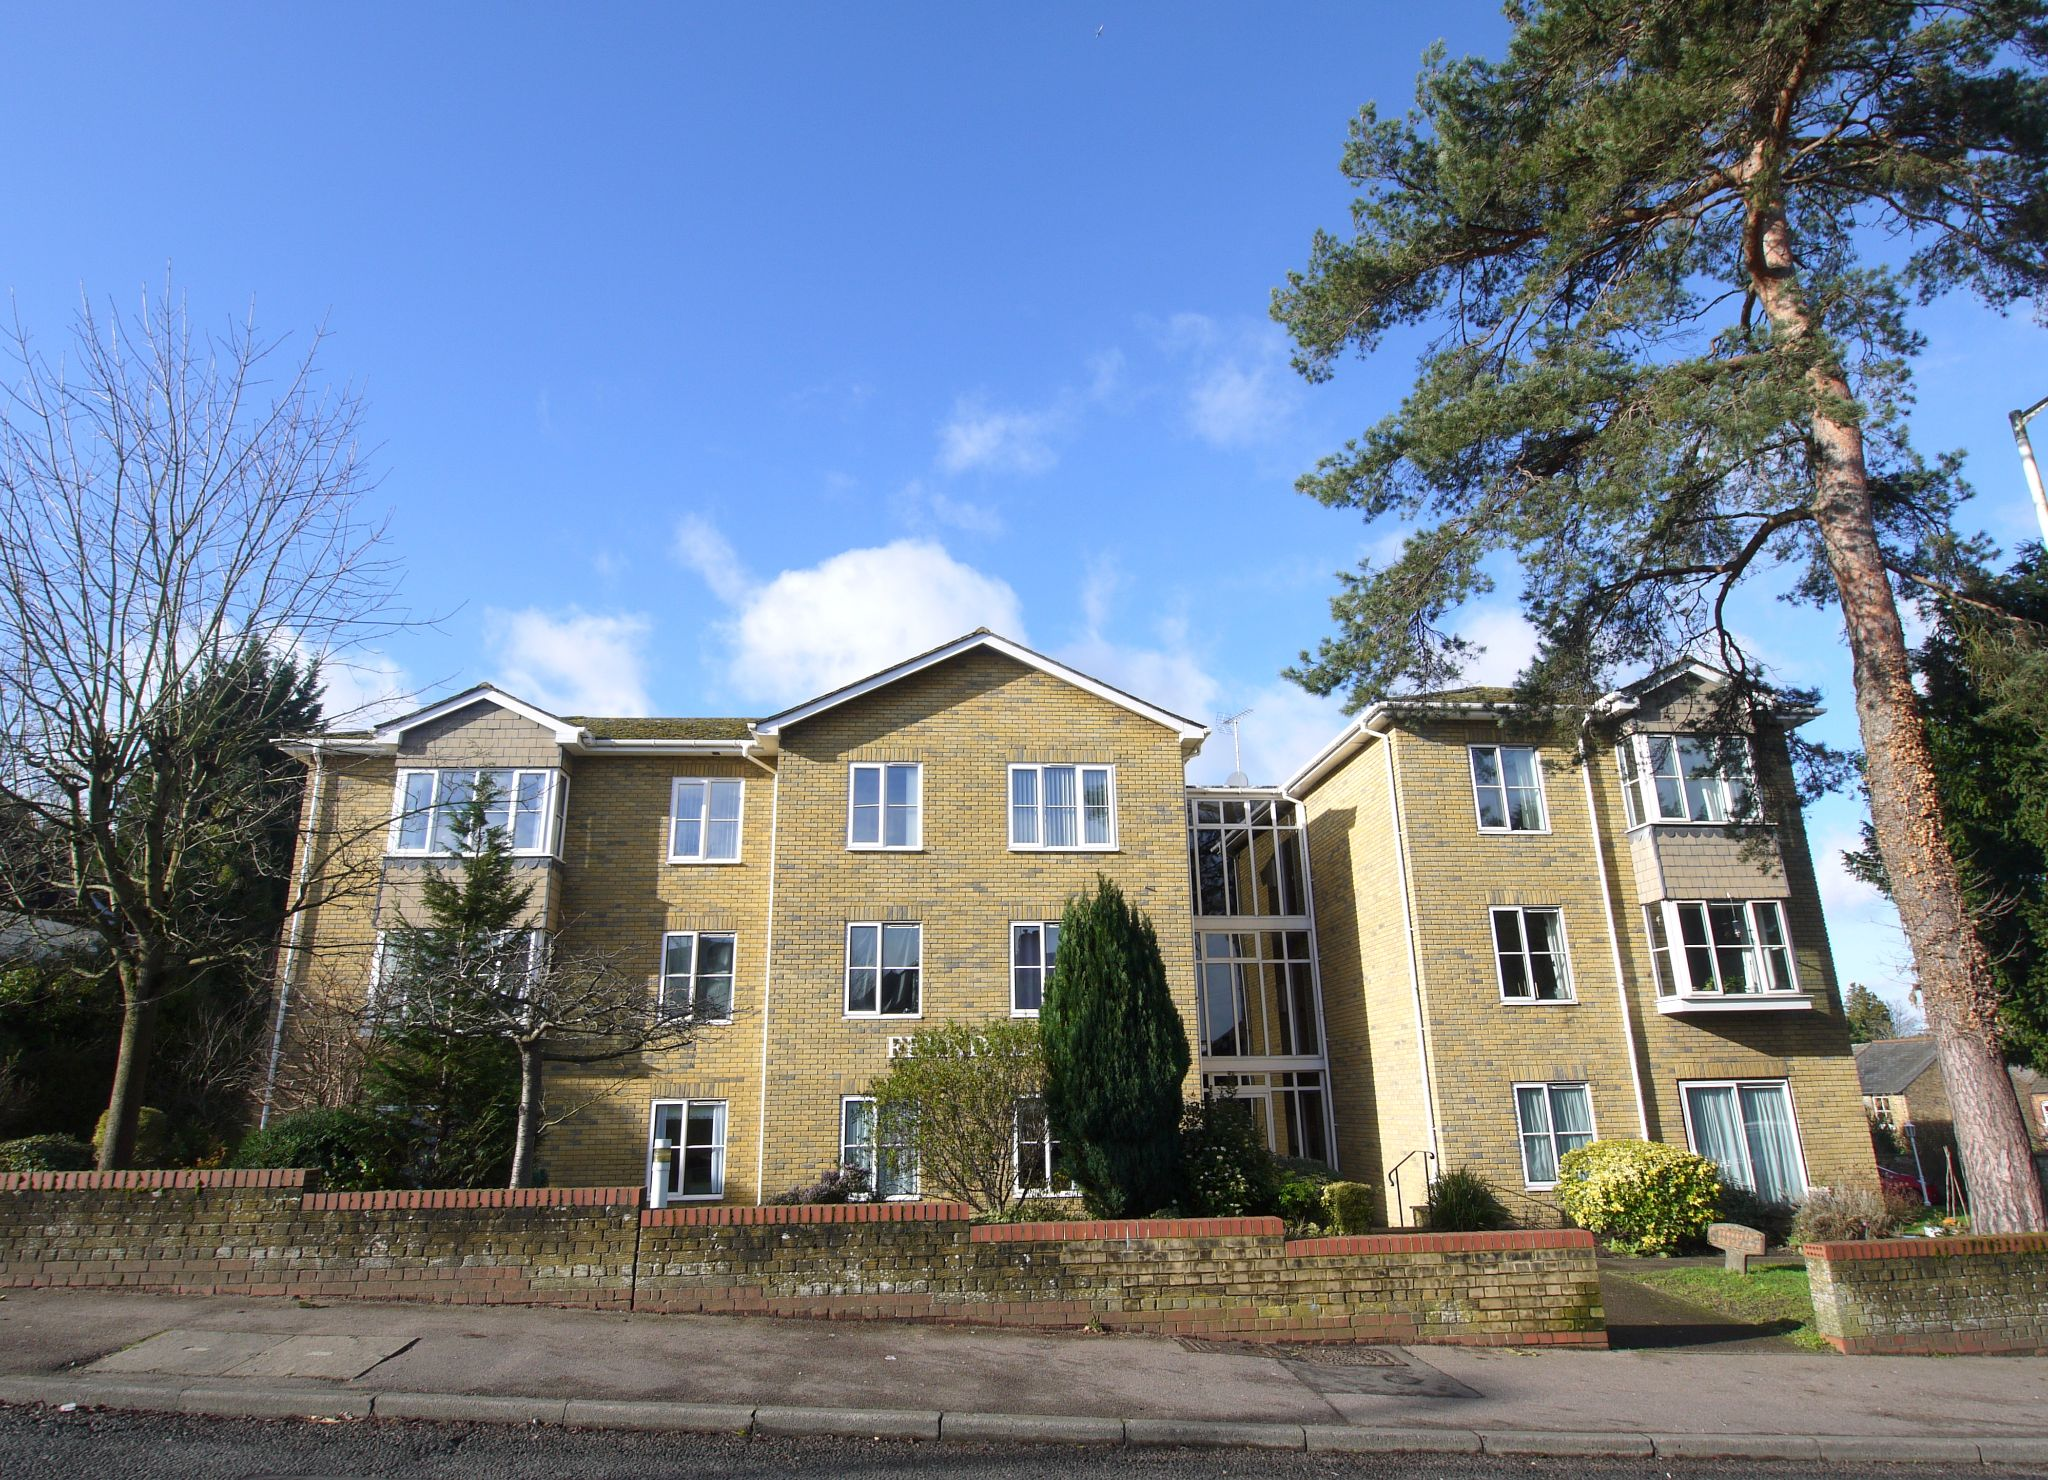 2 bedroom flat flat/apartment Sale Agreed in Sevenoaks - Photograph 1